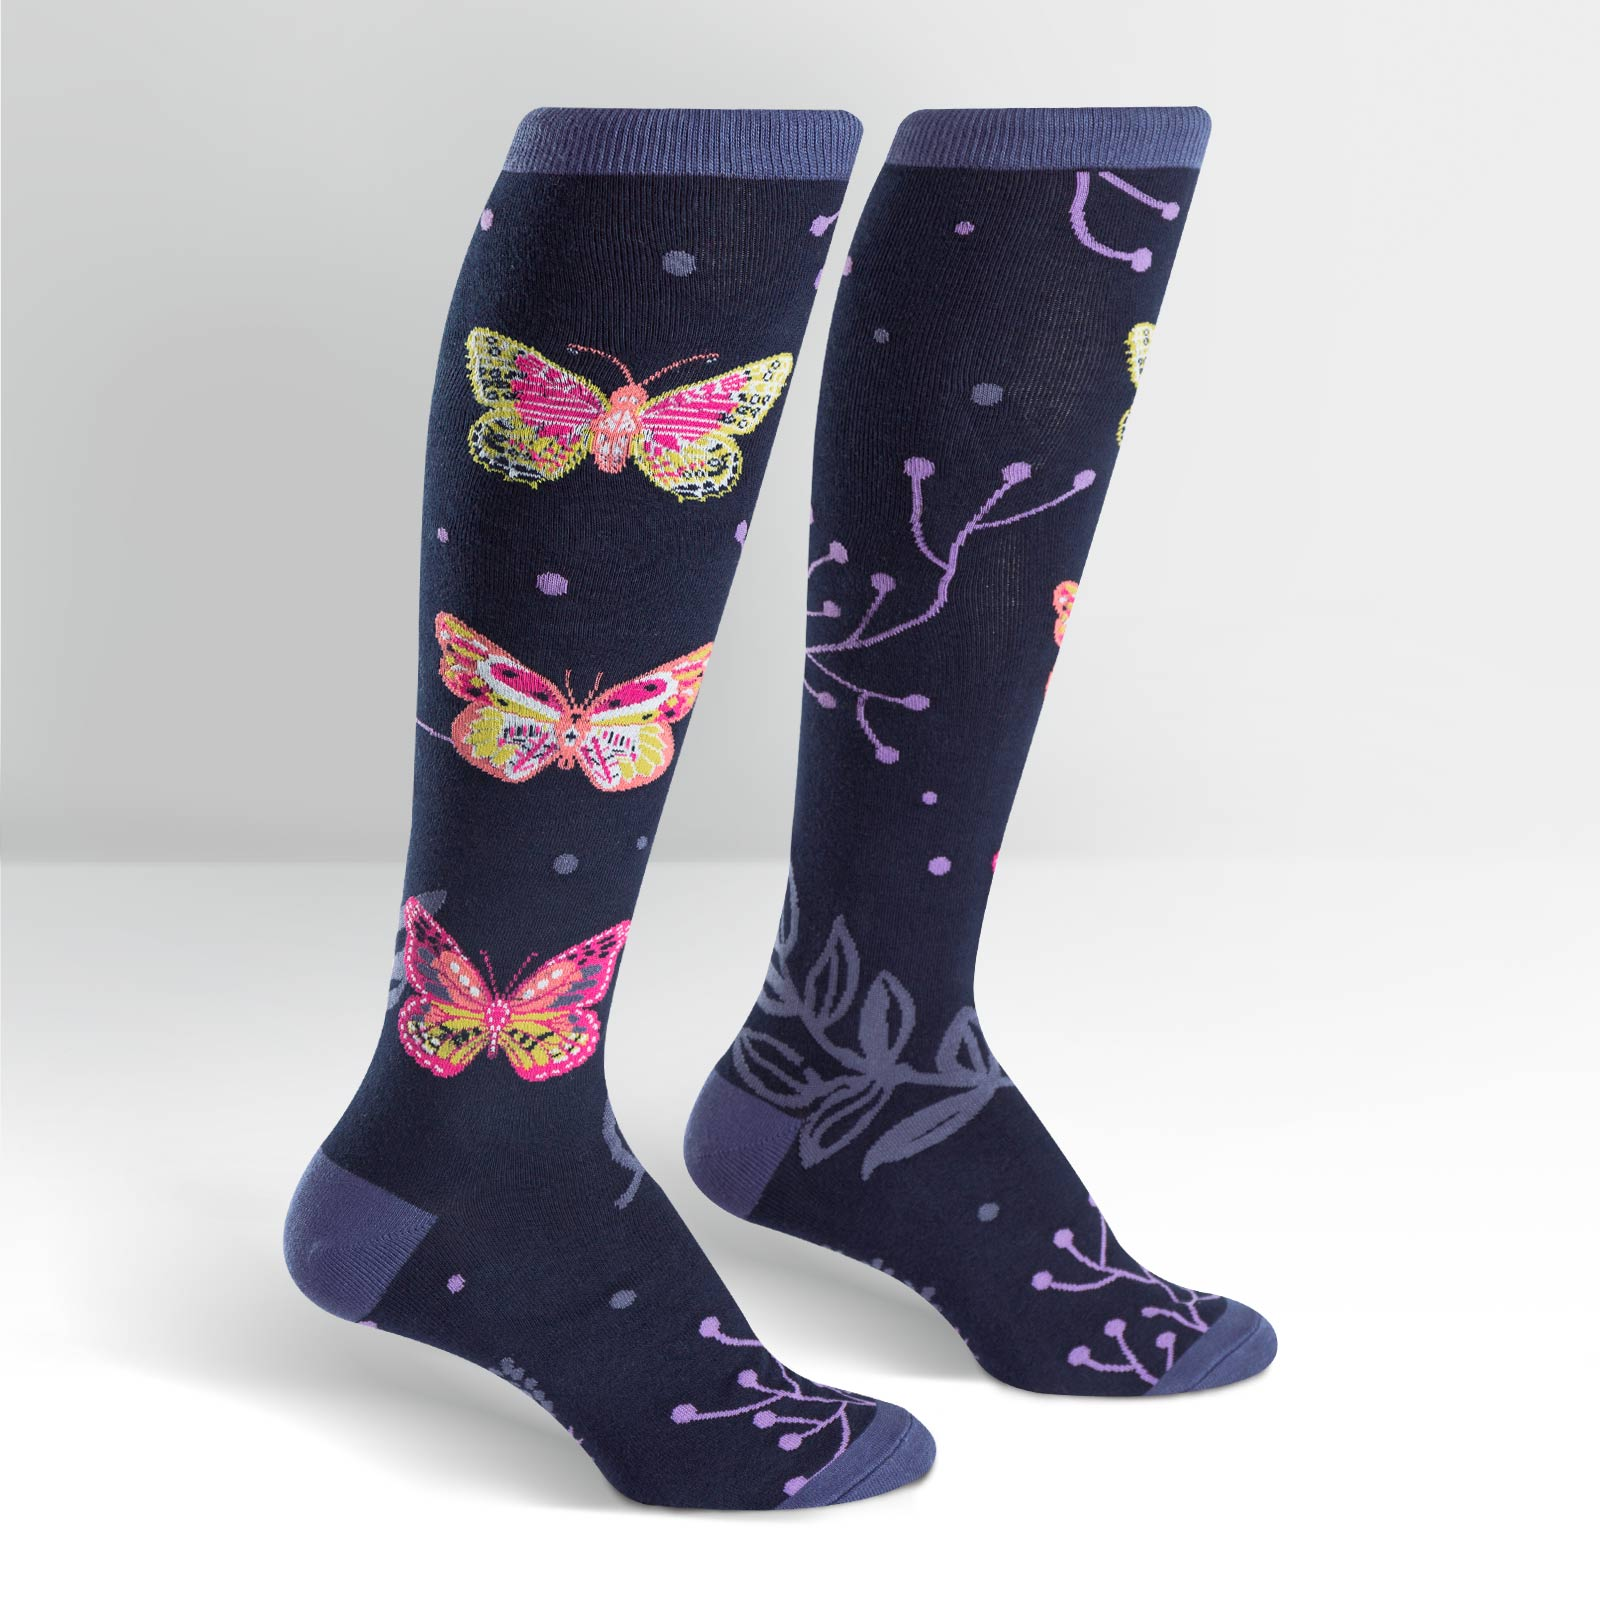 Sock Madame Butterfly,F0343 MDM BFLY